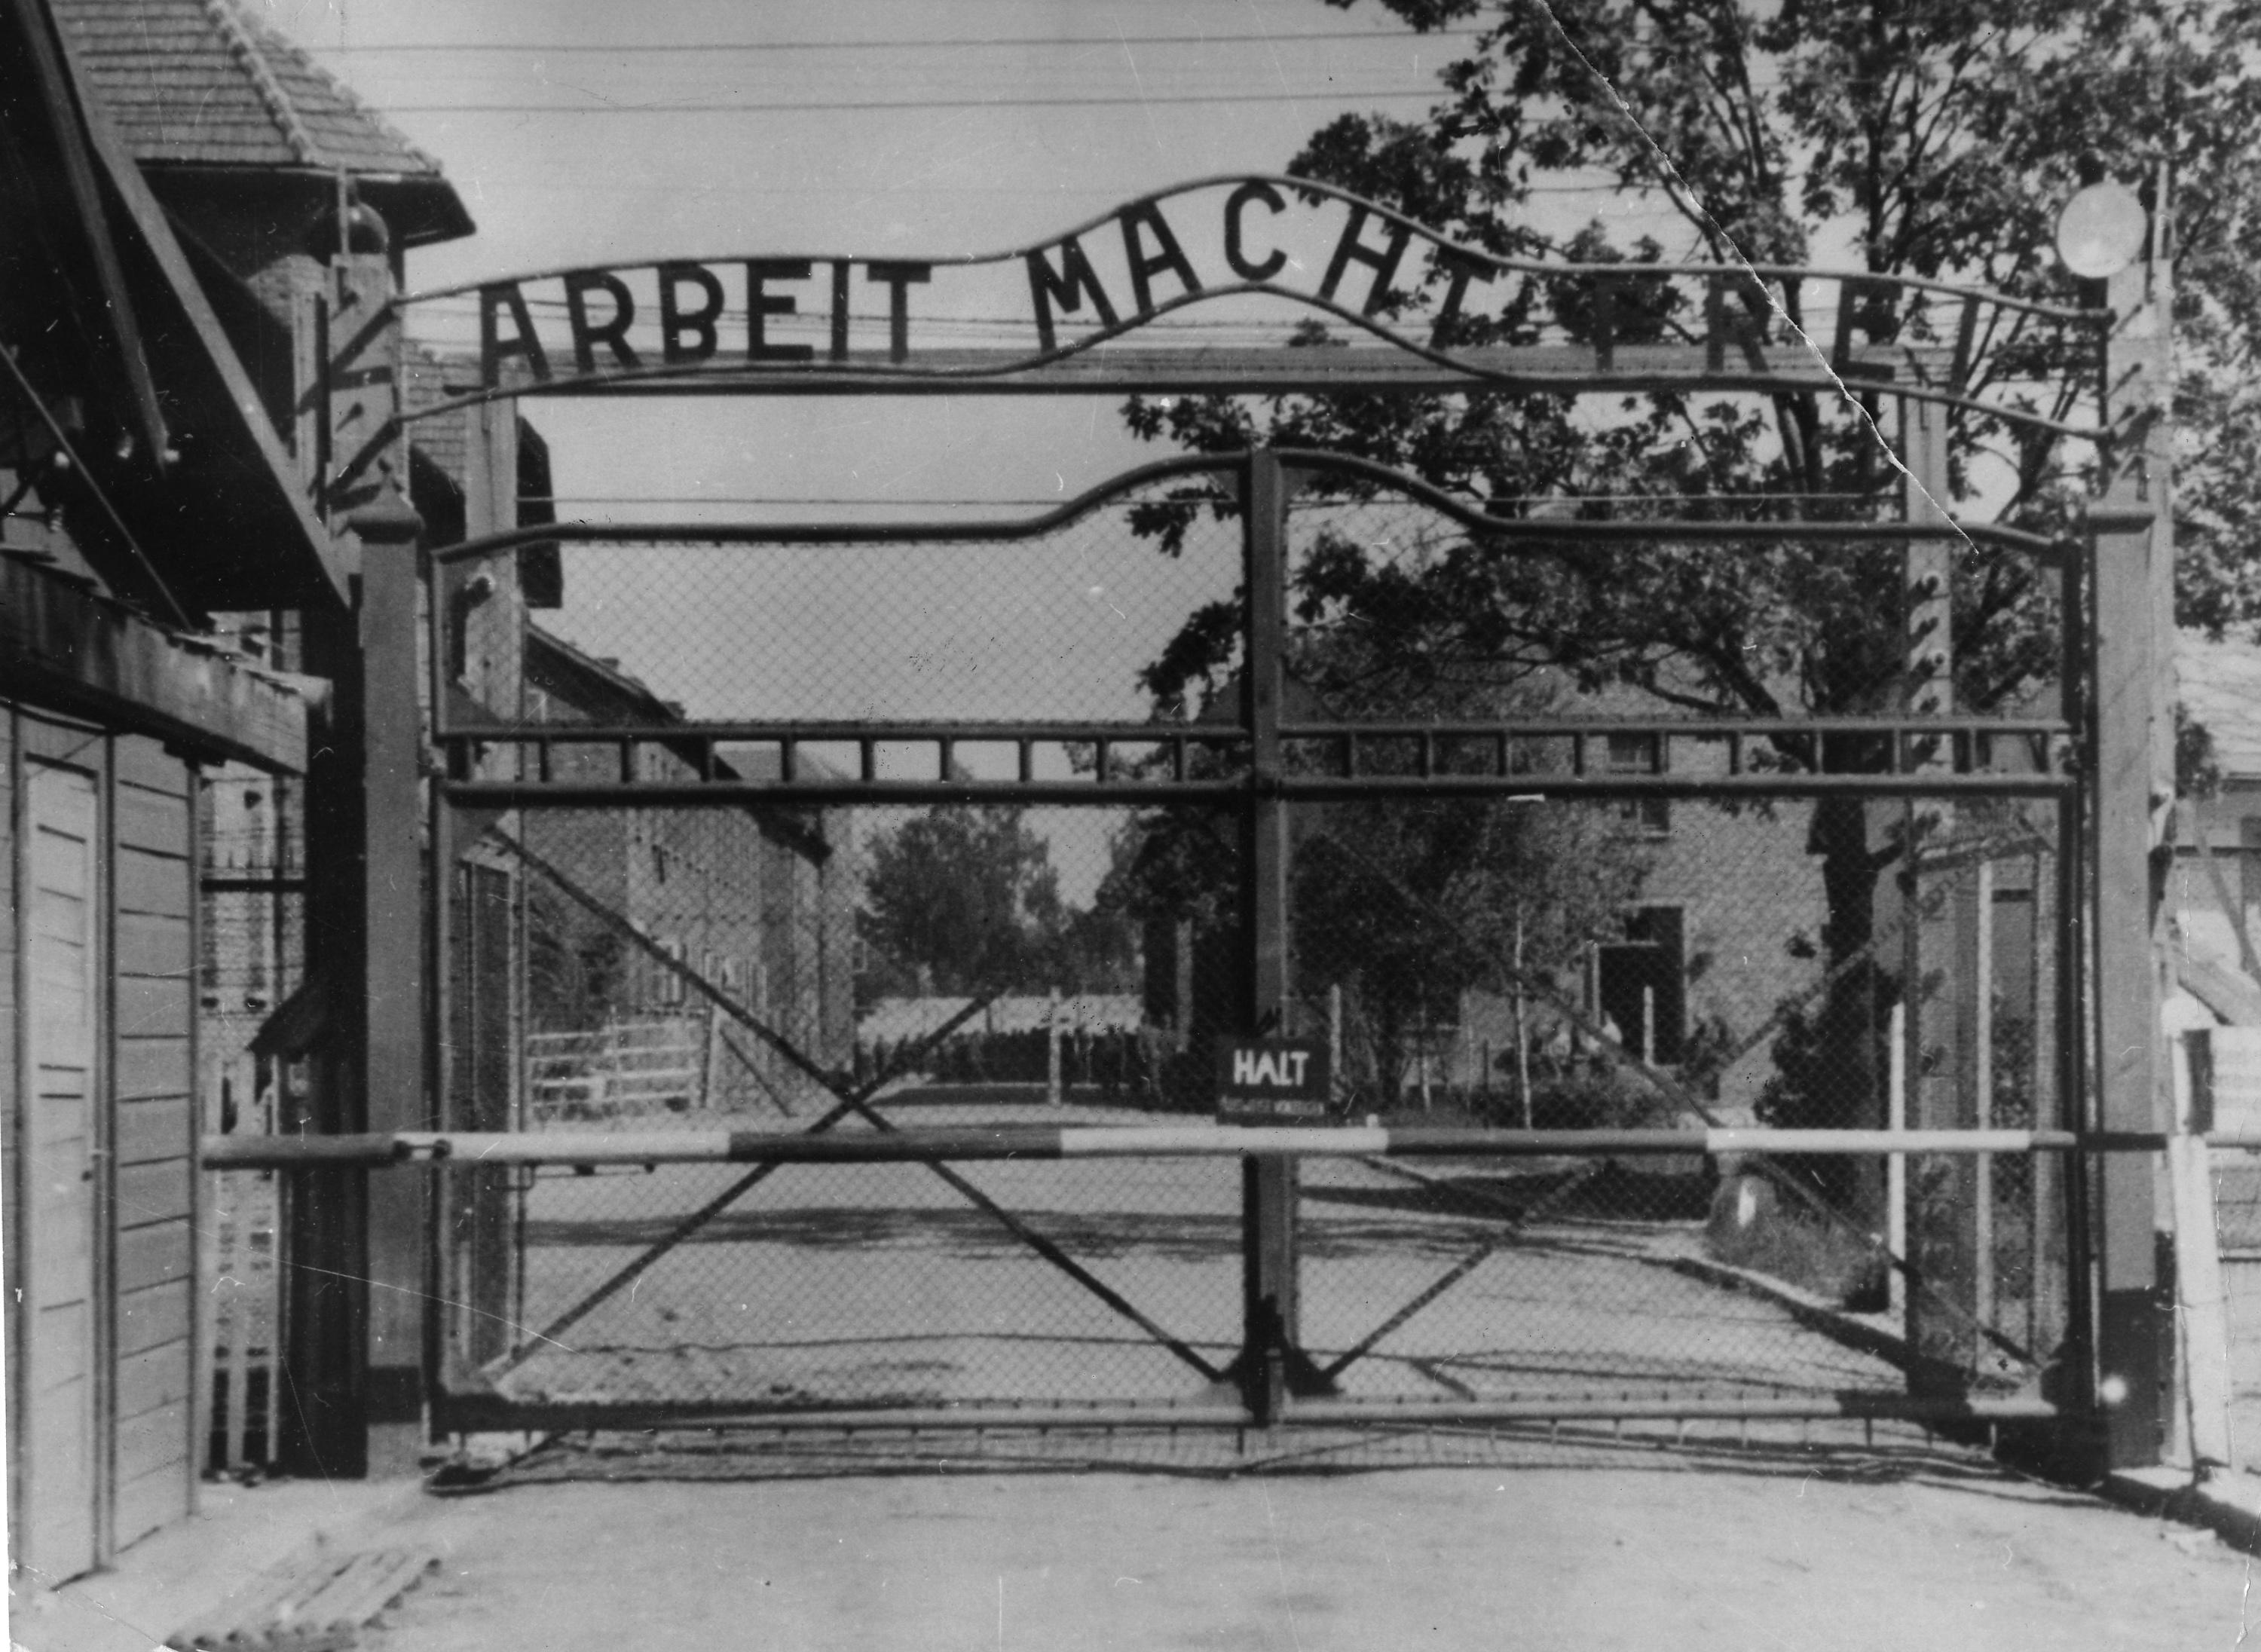 """FILE - This undated file image shows the main gate of the Nazi concentration camp Auschwitz I in Poland, which was liberated by the Russians in January 1945. Writing over the gate reads: """"Arbeit macht frei"""" (Work Sets You Free). Germany has launched a war crimes investigation against an 87-year-old Philadelphia man it accuses of serving as an SS guard at the Auschwitz death camp, The Associated Press has learned, following years of failed U.S. Justice Department efforts to have the man stripped of his American citizenship and deported. Johann """"Hans"""" Breyer, a retired toolmaker, admits he was a guard at Auschwitz during World War II, but told the AP he was stationed outside the facility and had nothing to do with the wholesale slaughter of some 1.5 million Jews and others behind the gates. (AP Photo/File)"""